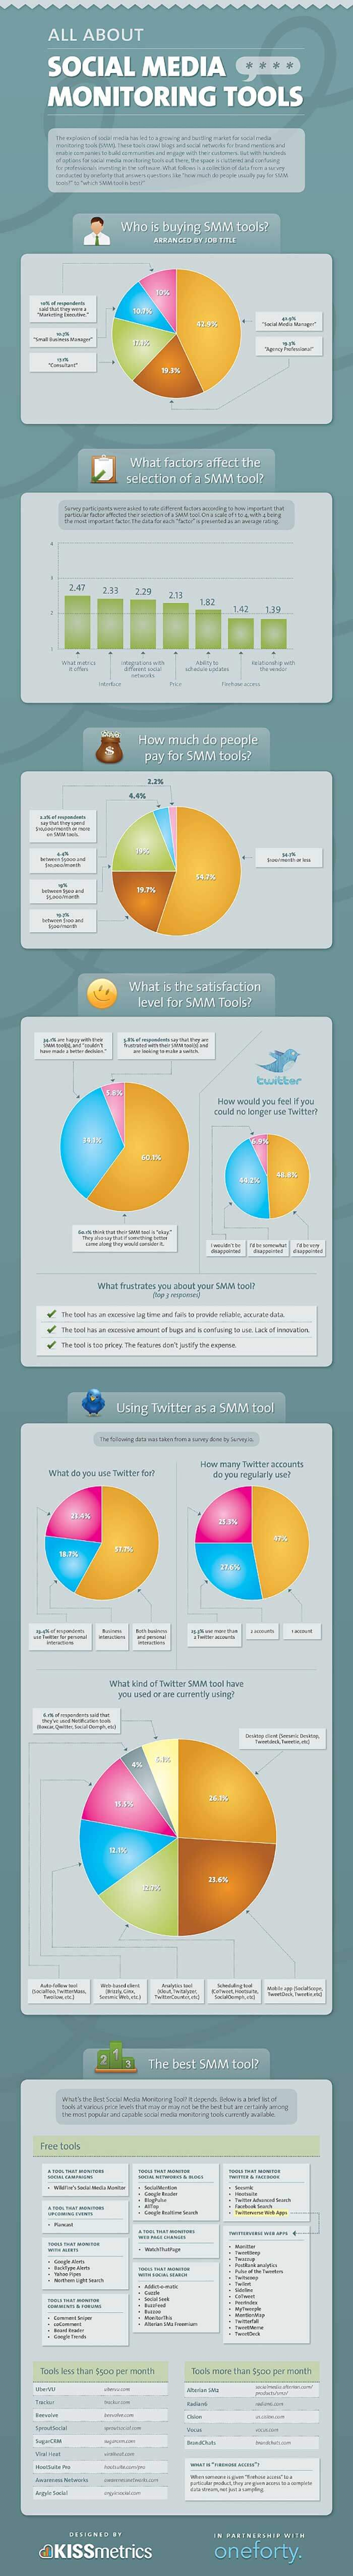 nice piece of infographics courtesy of KISSMetrics